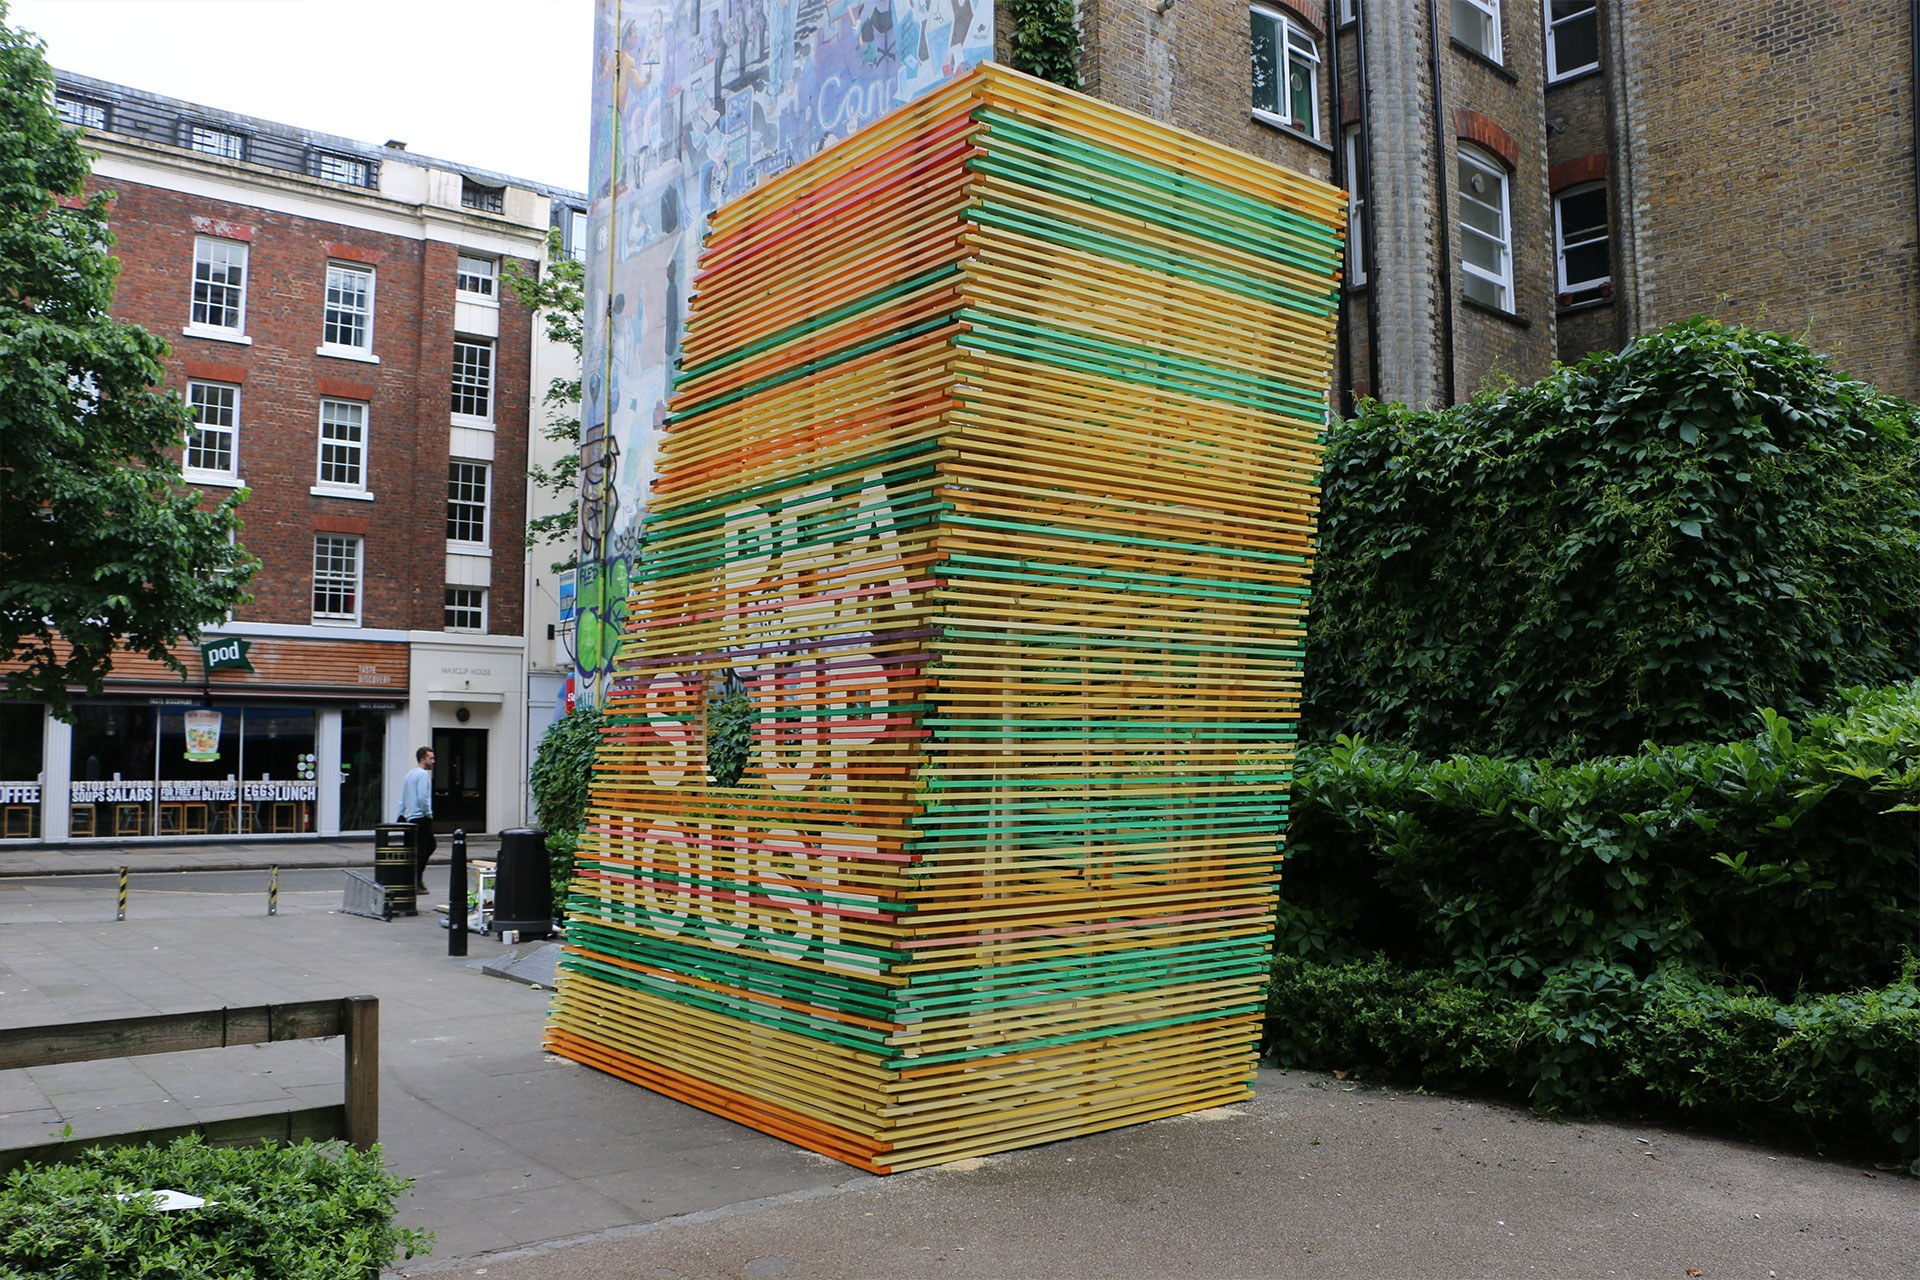 The pea soup house installation at Whitfield Gardens in Fitzrovia